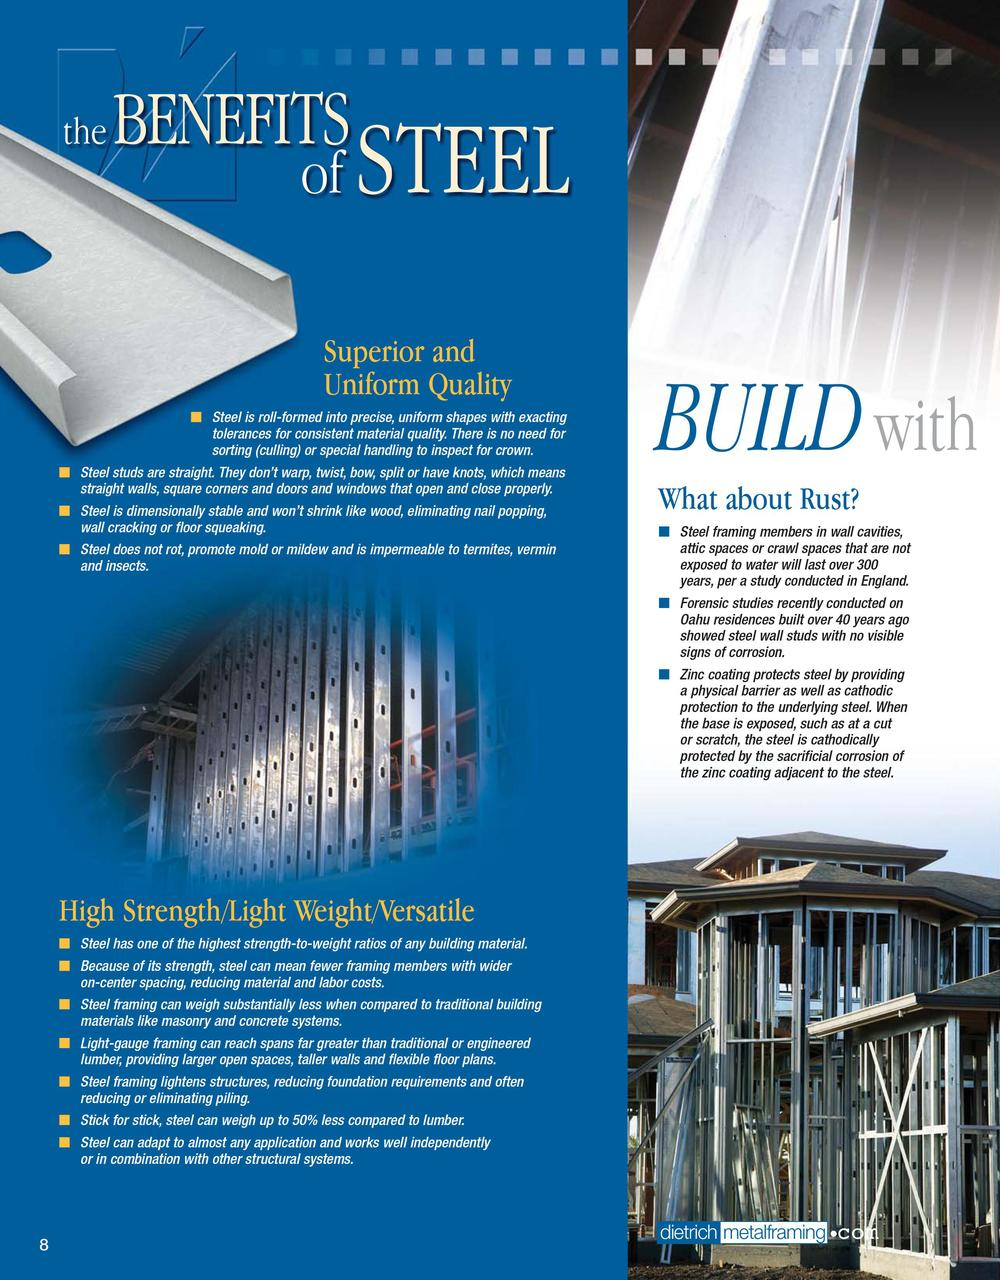 the benefits of steel superior and uniform quality by dietrich metal framing